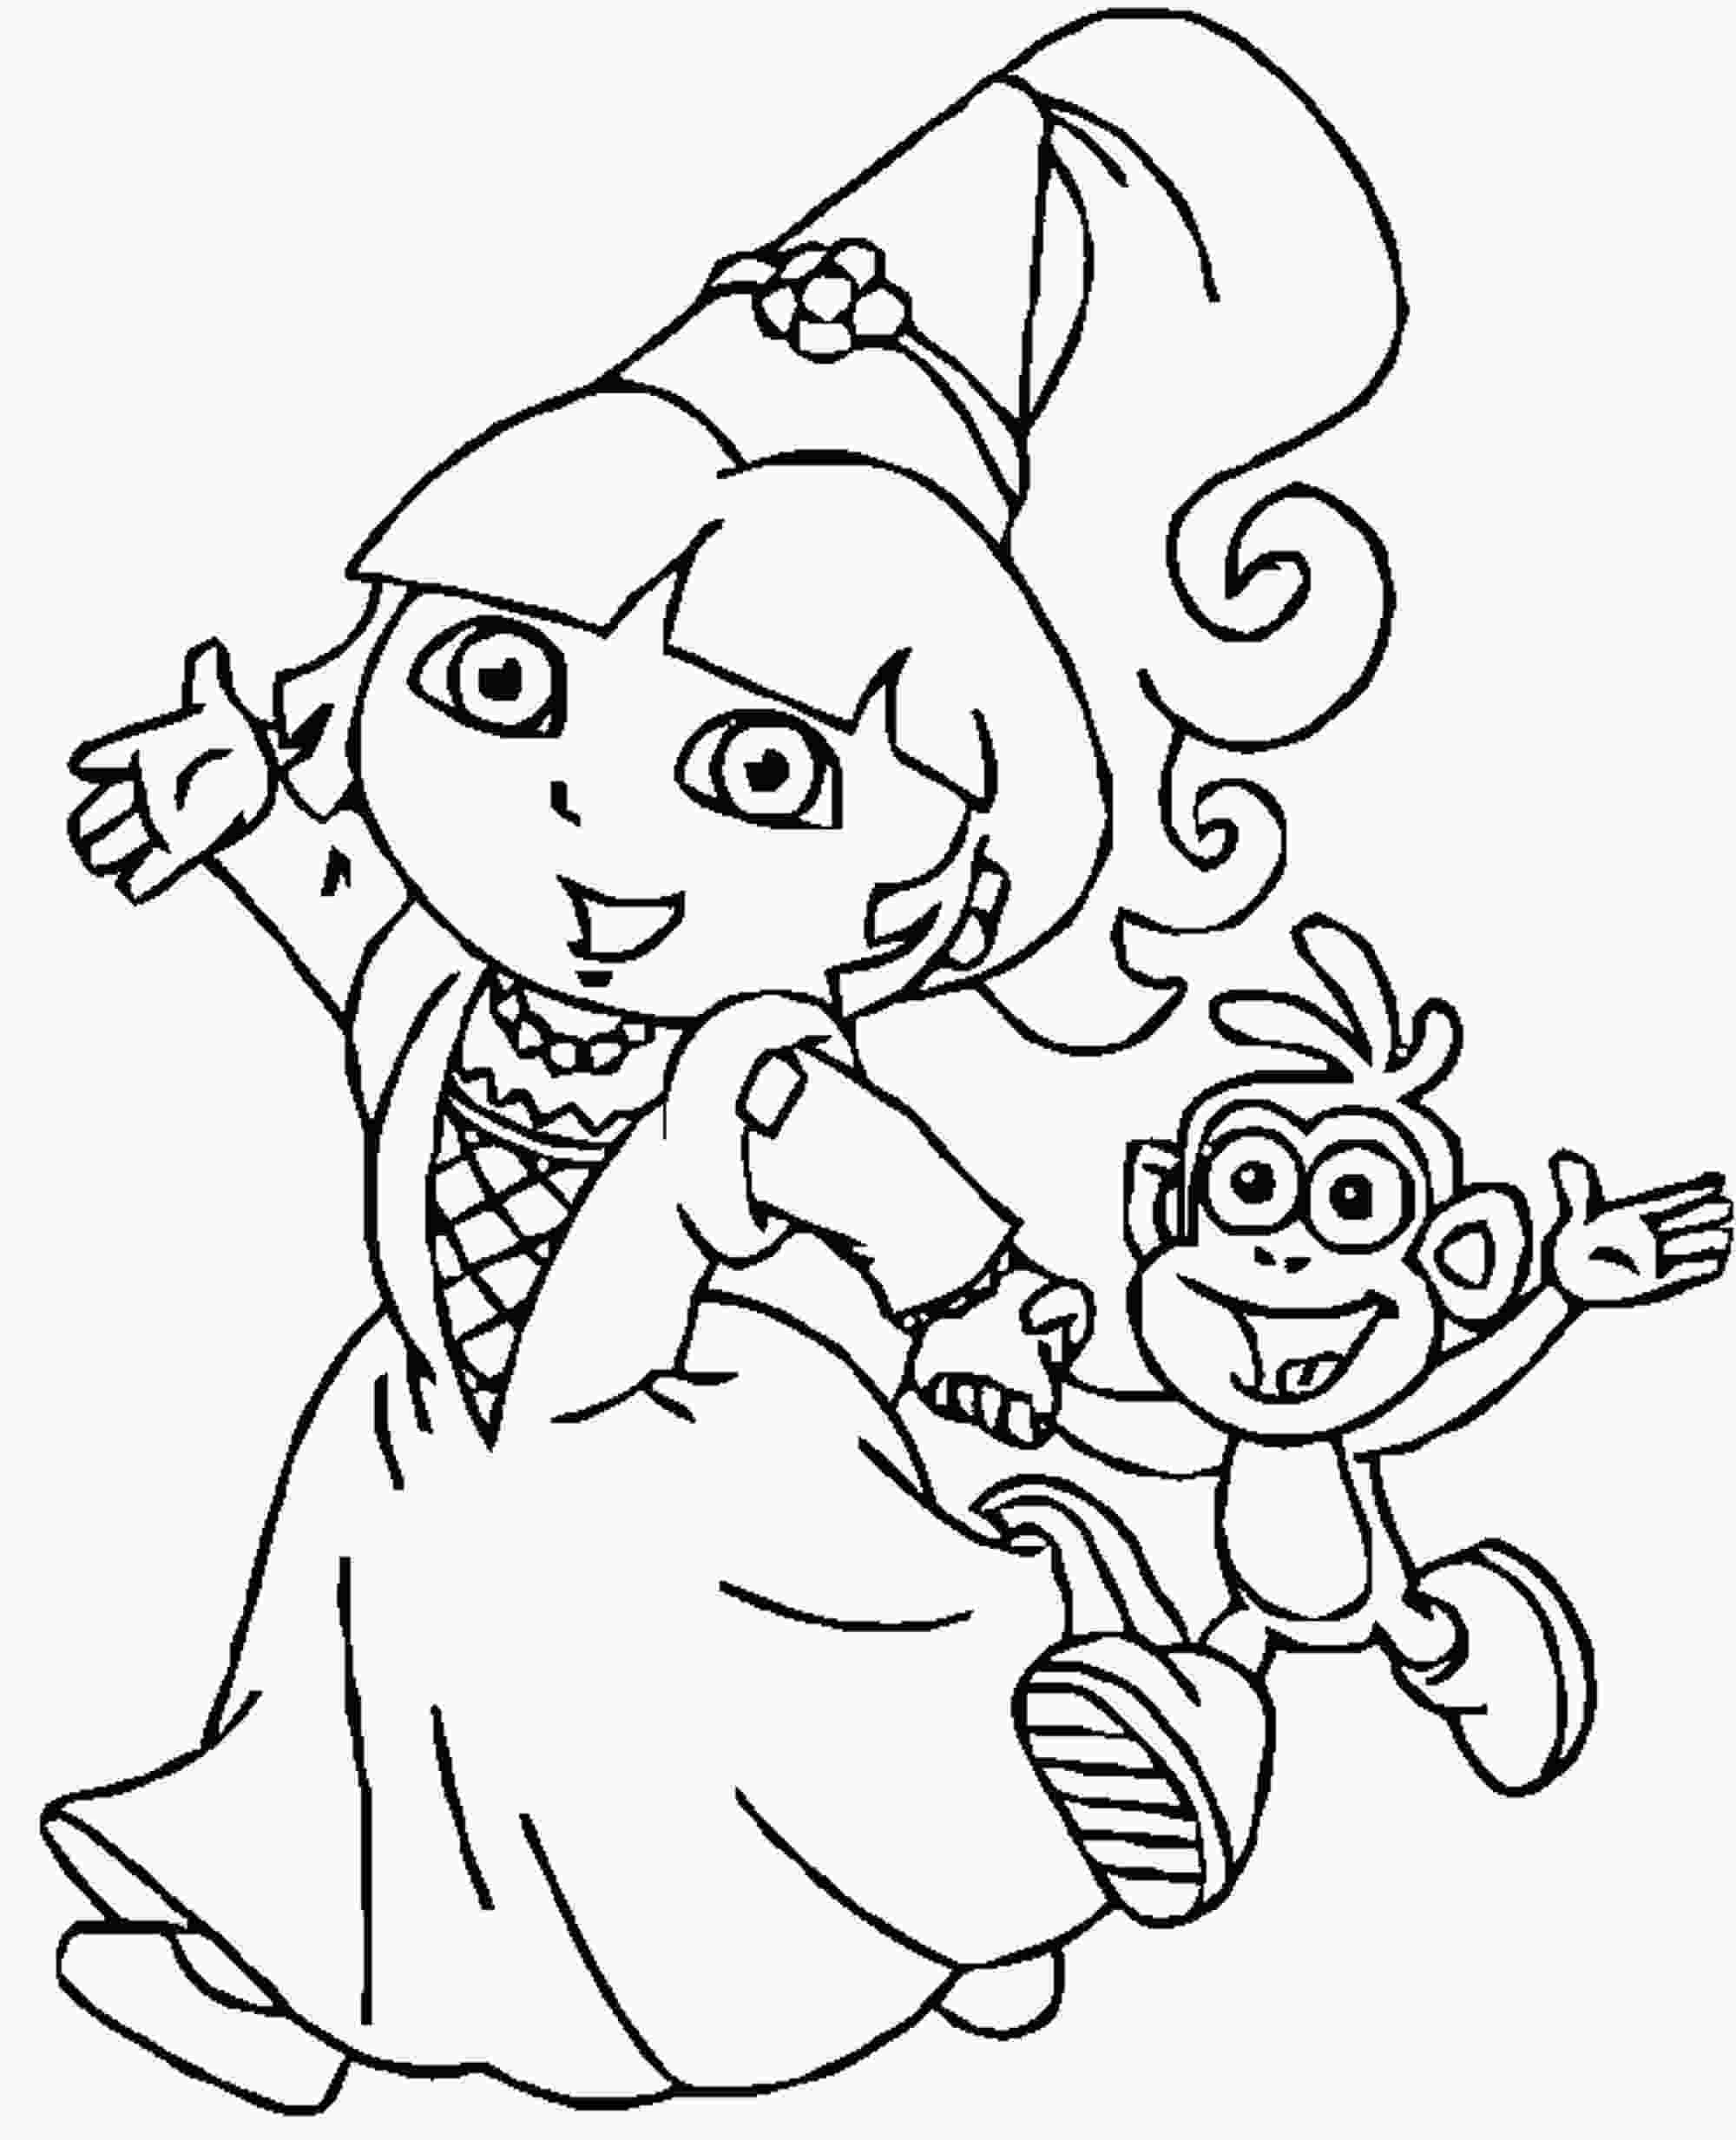 dora colouring pages printable print amp download dora coloring pages to learn new things